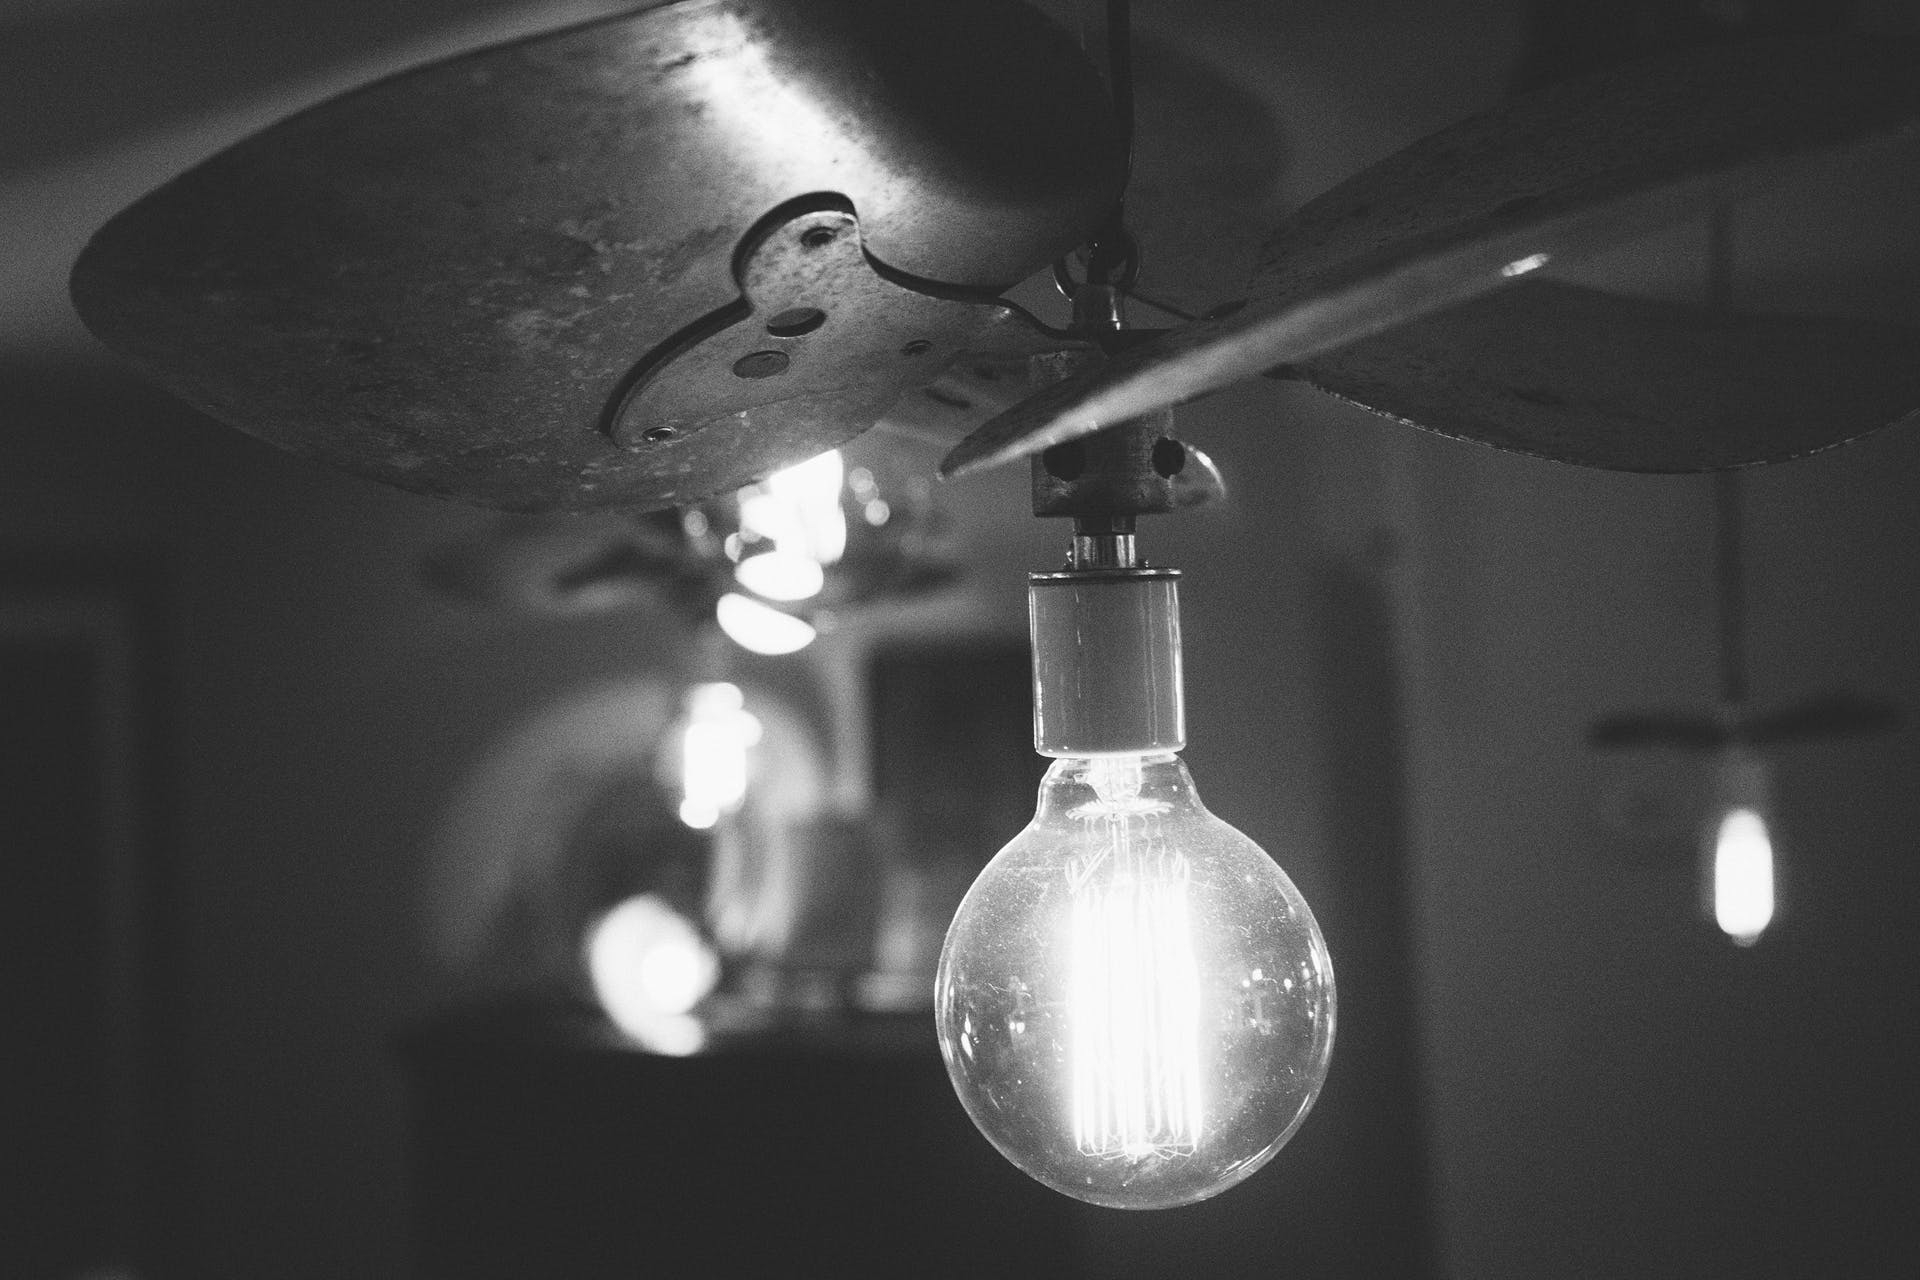 Grayscale Photography of Turned on Light With Ceiling Fan